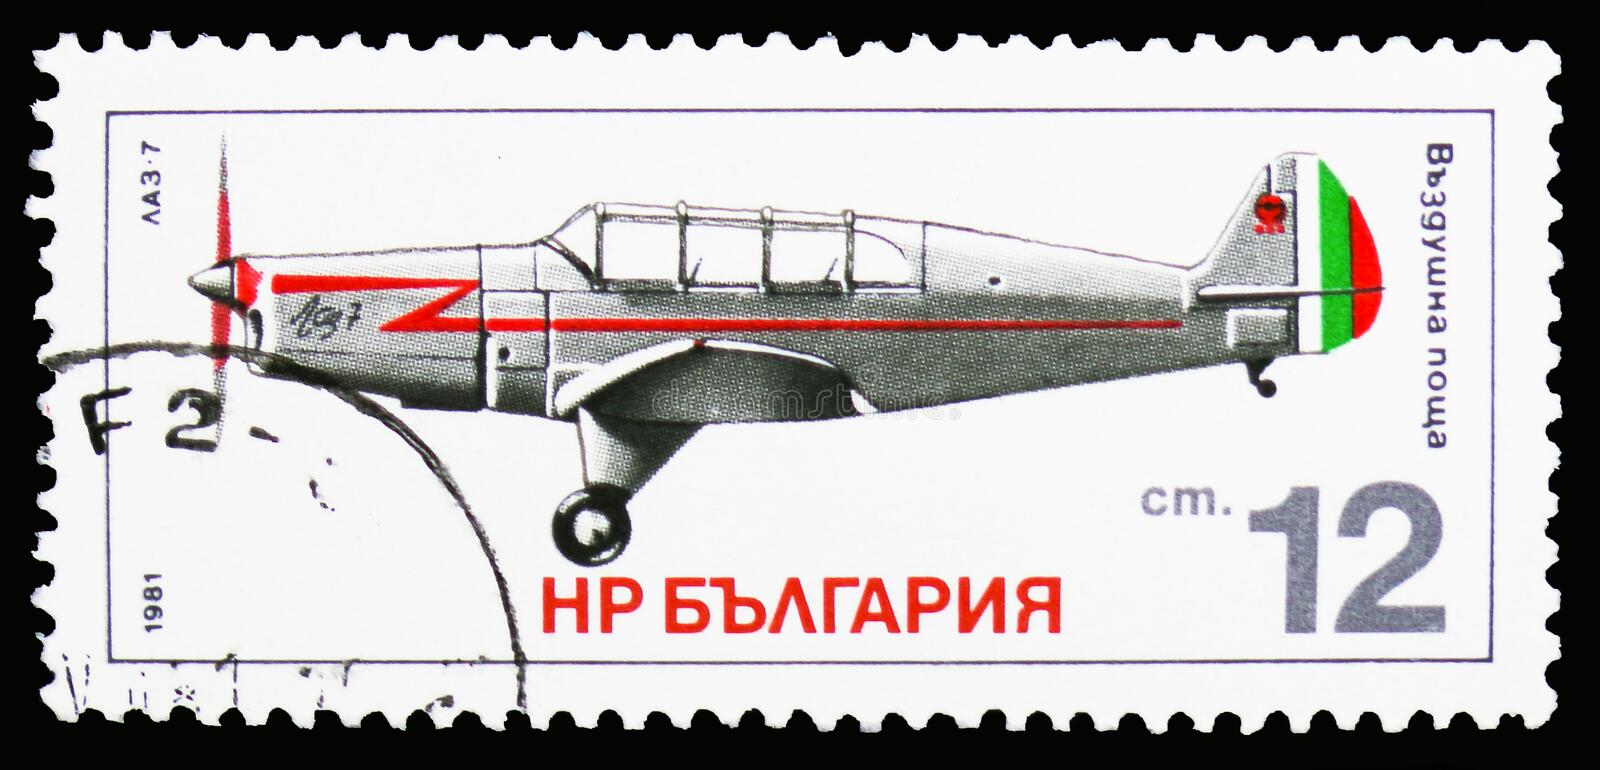 Sport aircraft LAS-7, History of aircraft serie, circa 1981. MOSCOW, RUSSIA - OCTOBER 6, 2018: A stamp printed in Bulgaria shows Sport aircraft LAS-7, History of royalty free stock photography